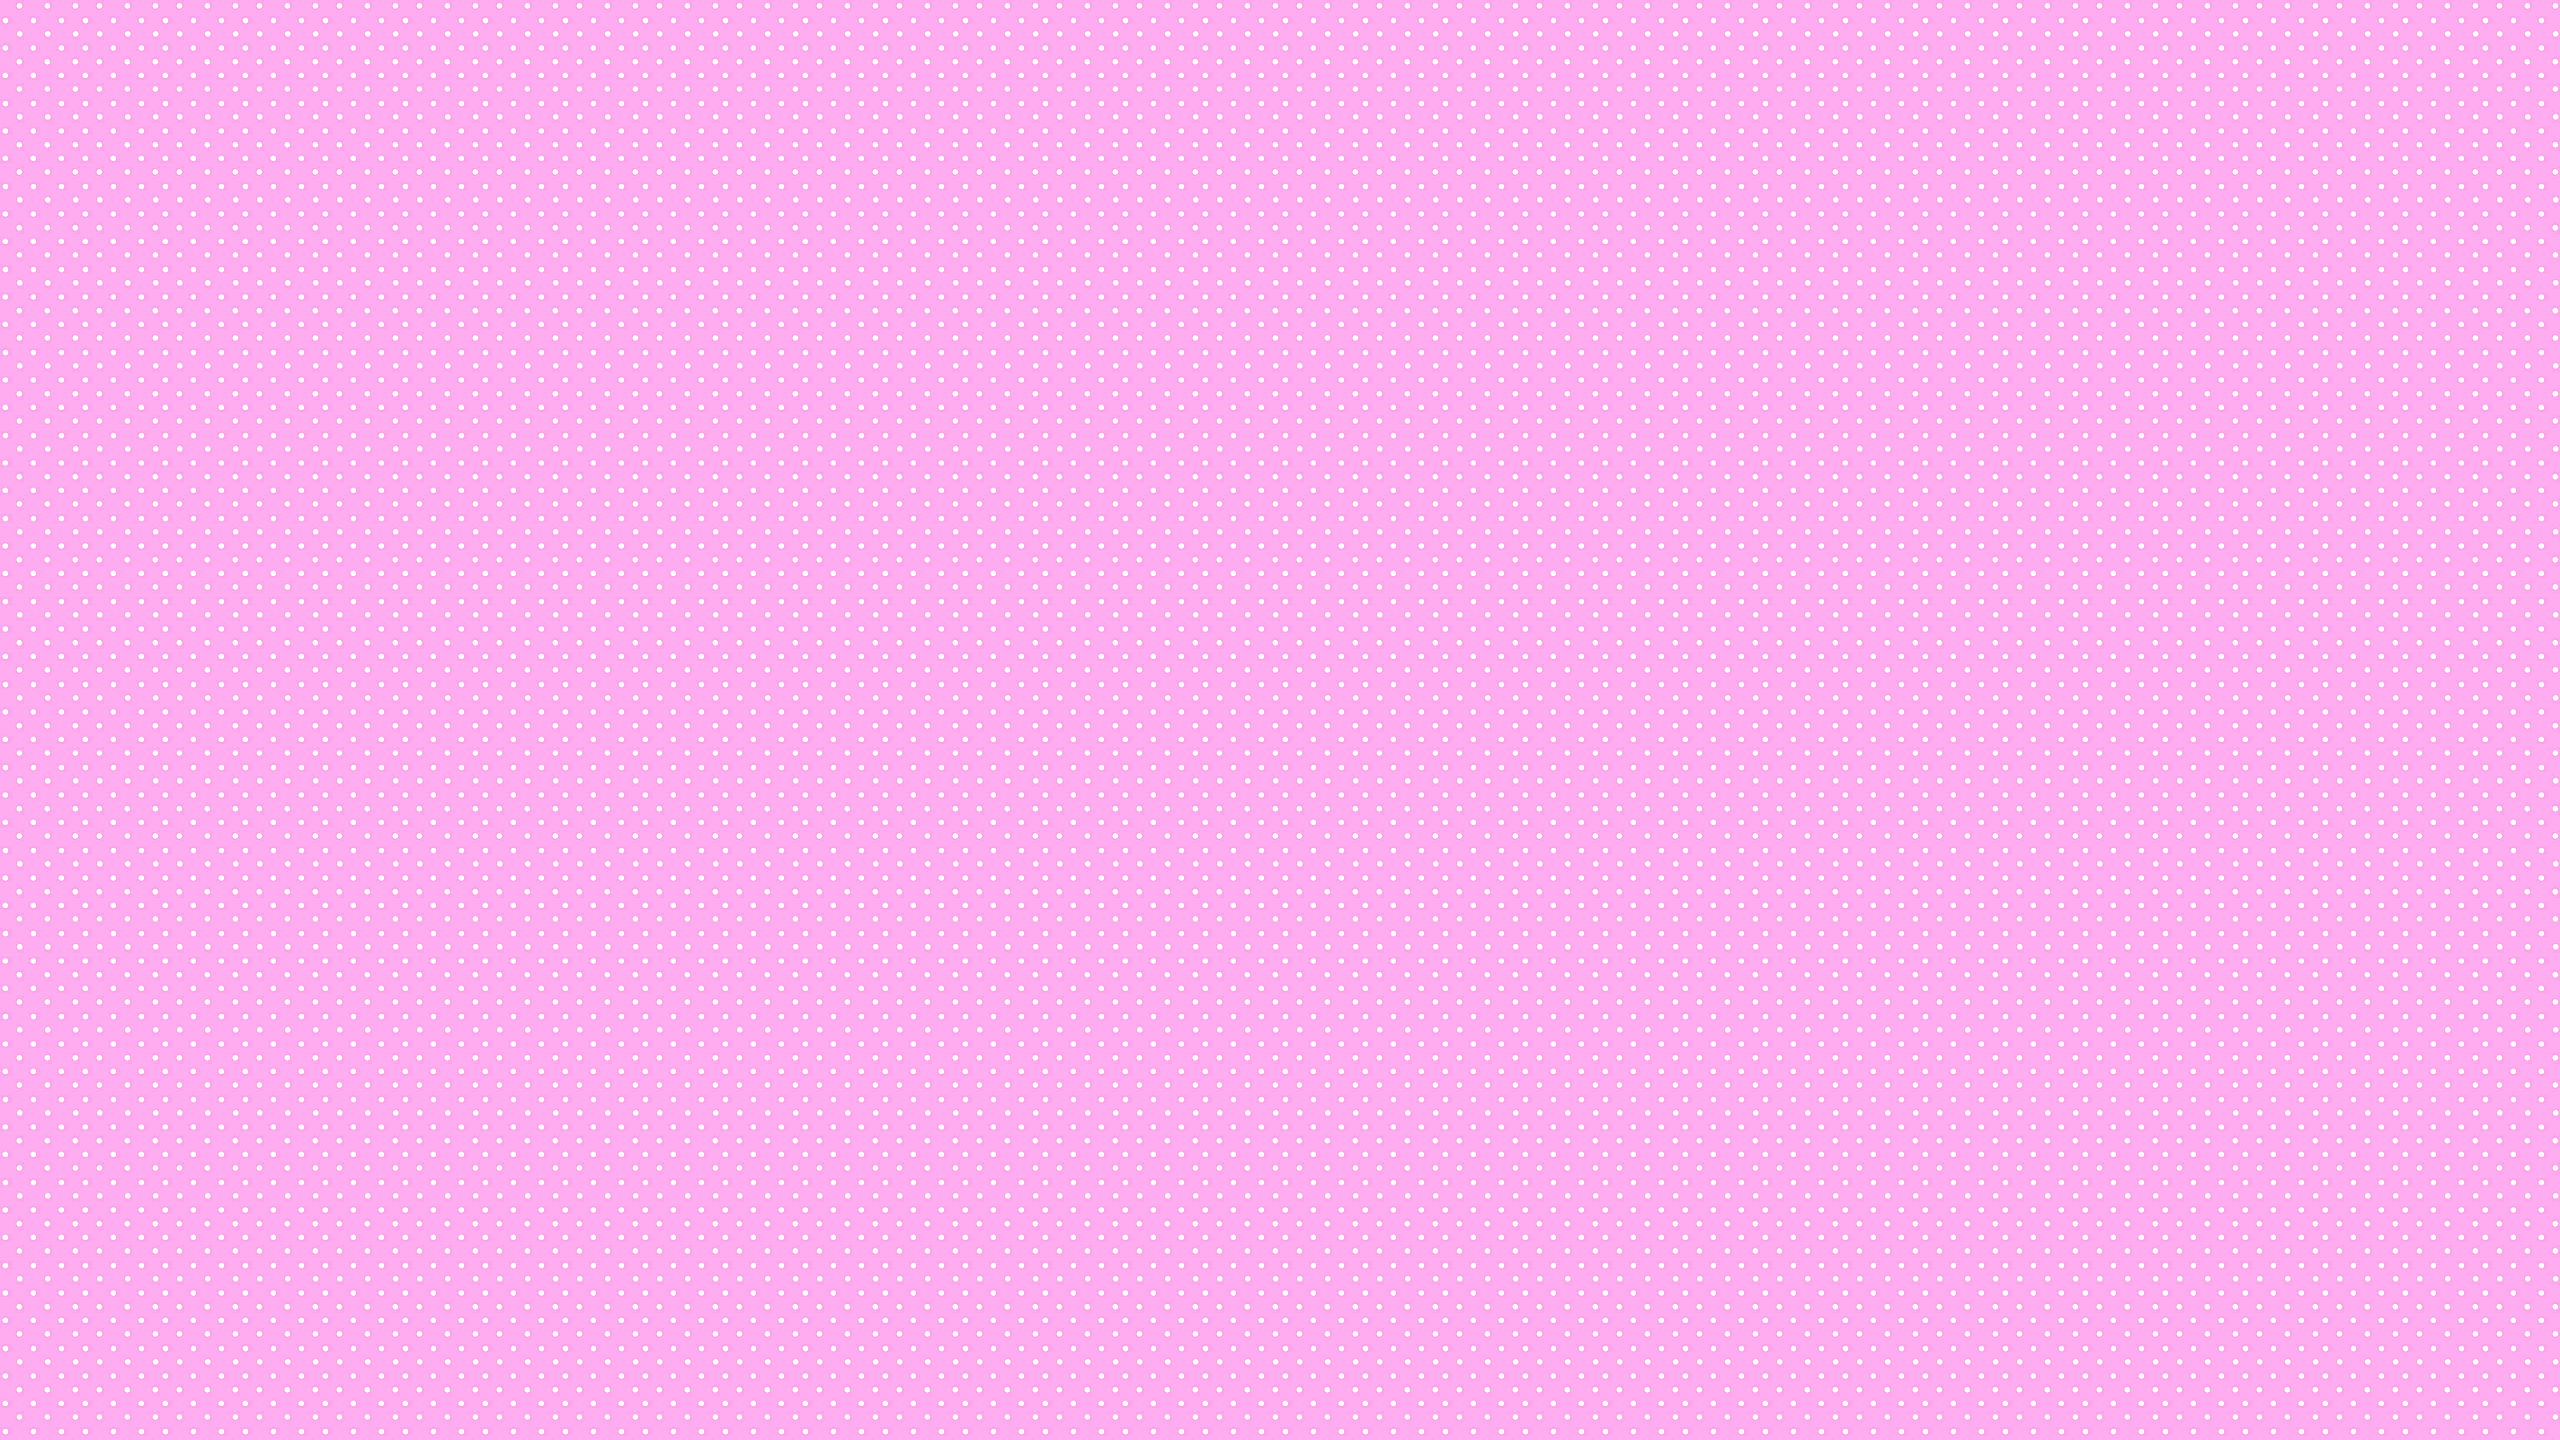 Pastel Pink Dots Desktop Wallpaper is easy Just save the wallpaper 2560x1440